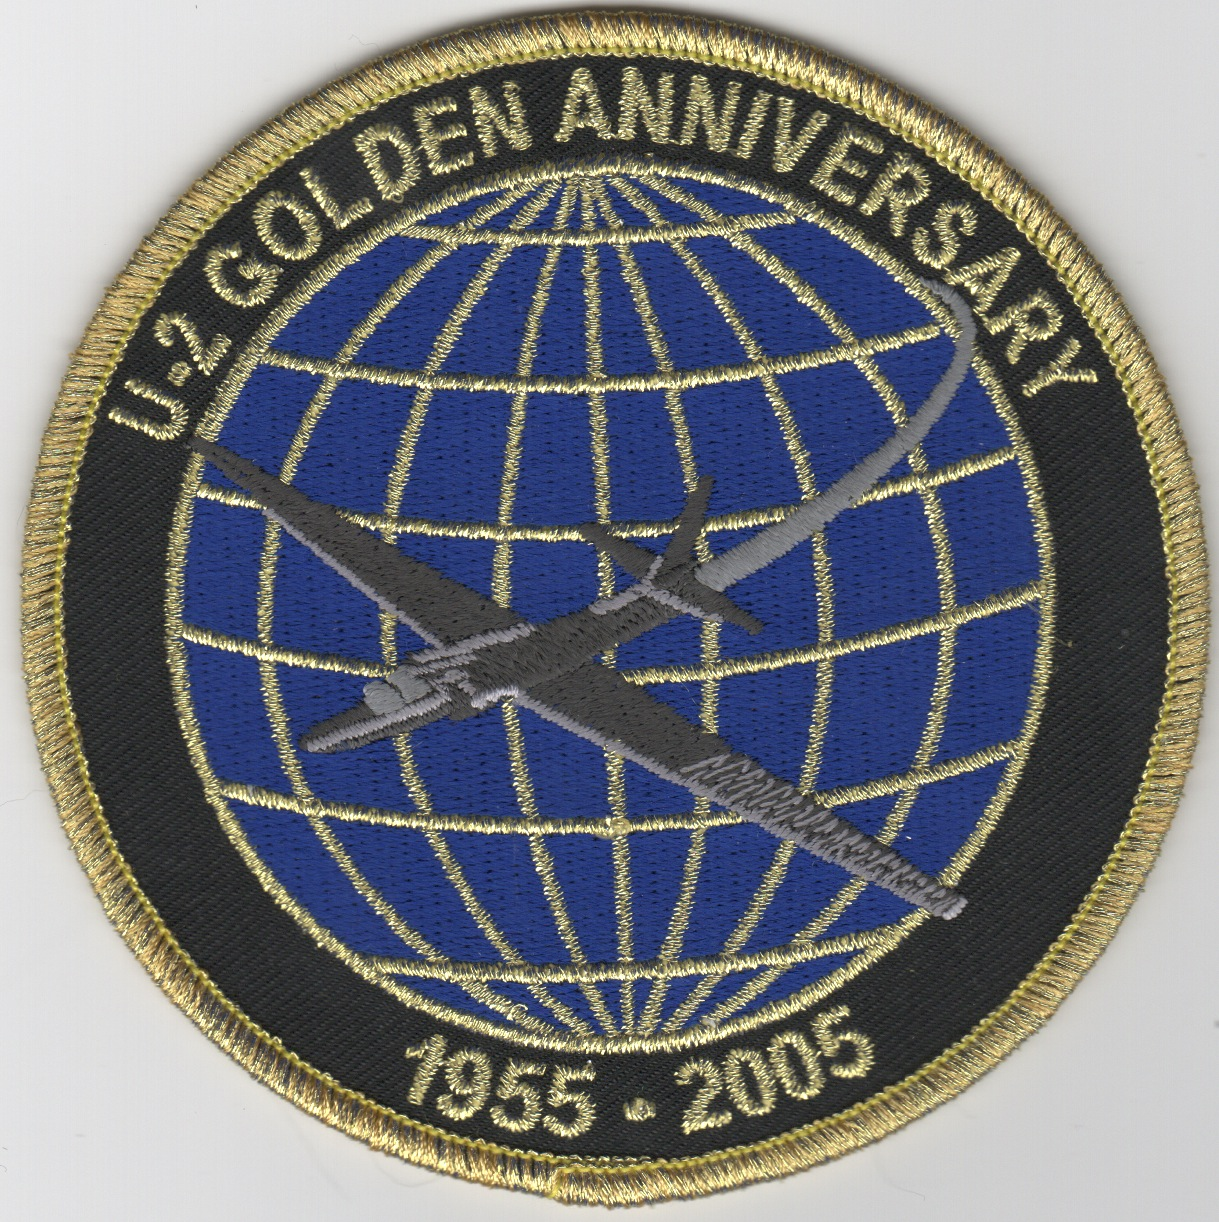 U-2 '50th Anniversary' Patch